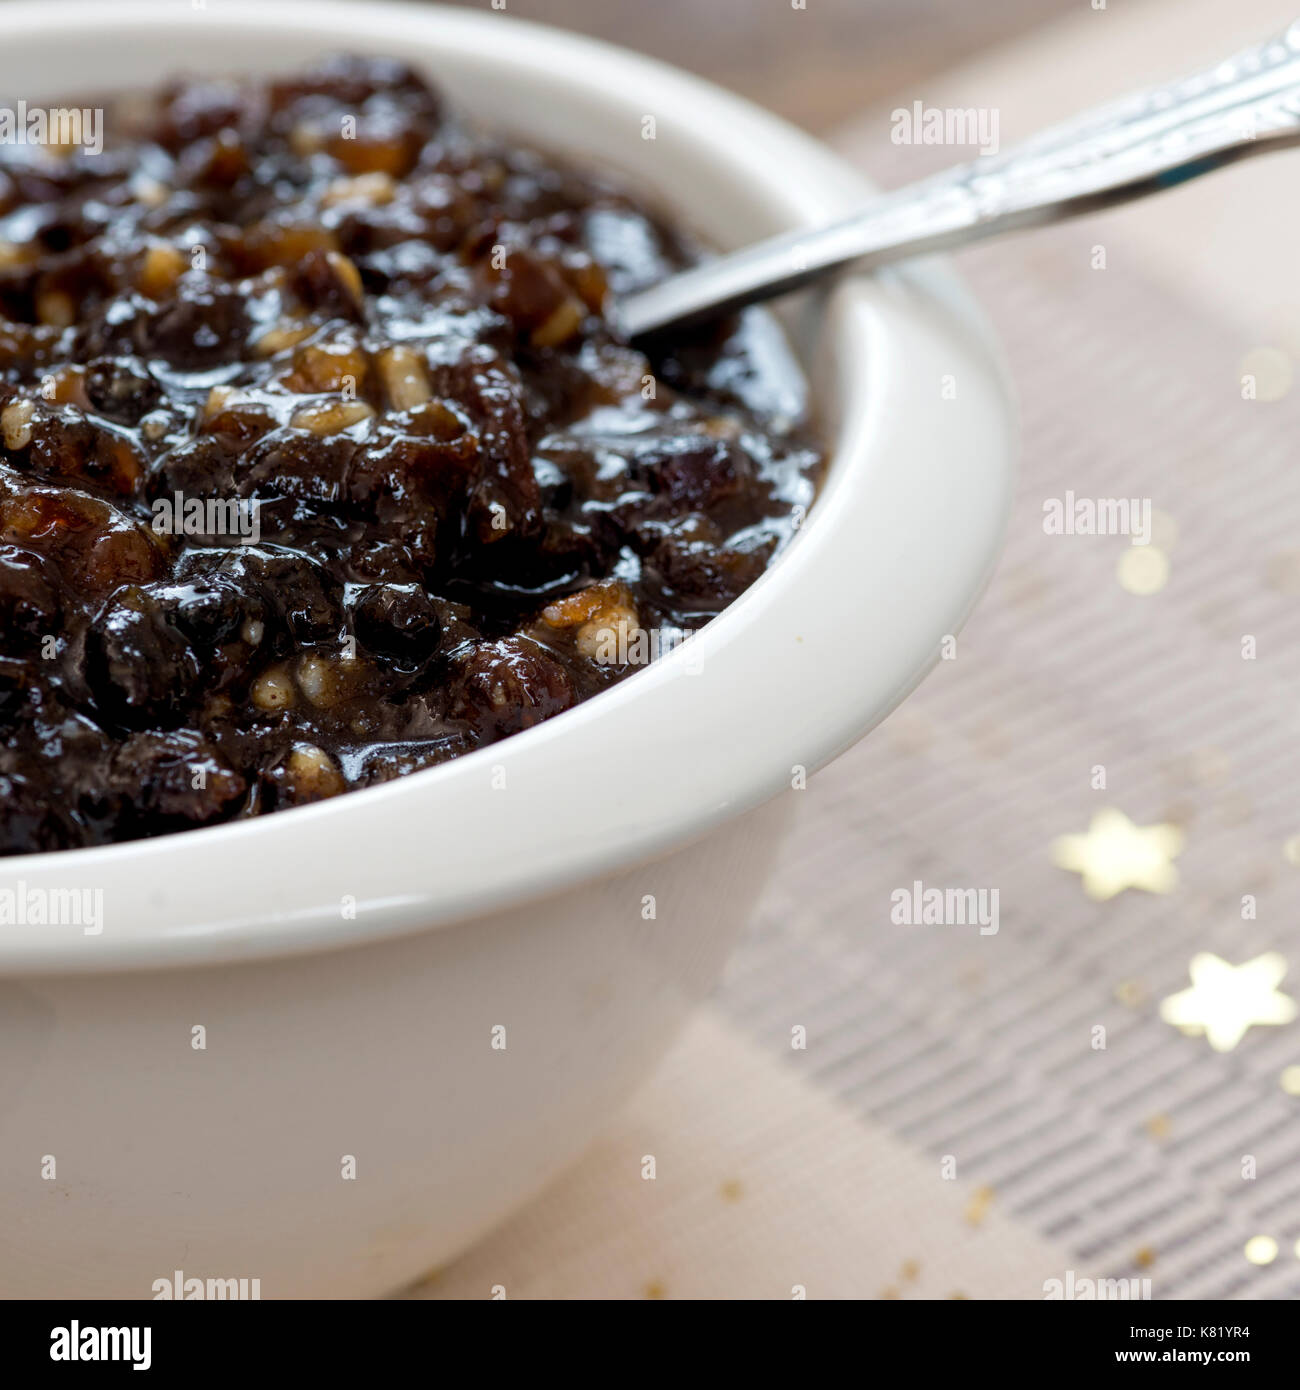 square macro image of homemade traditional Christmas mincemeat made with mixed fruit and brandy in a white bowl, focus on the subject,   background de - Stock Image